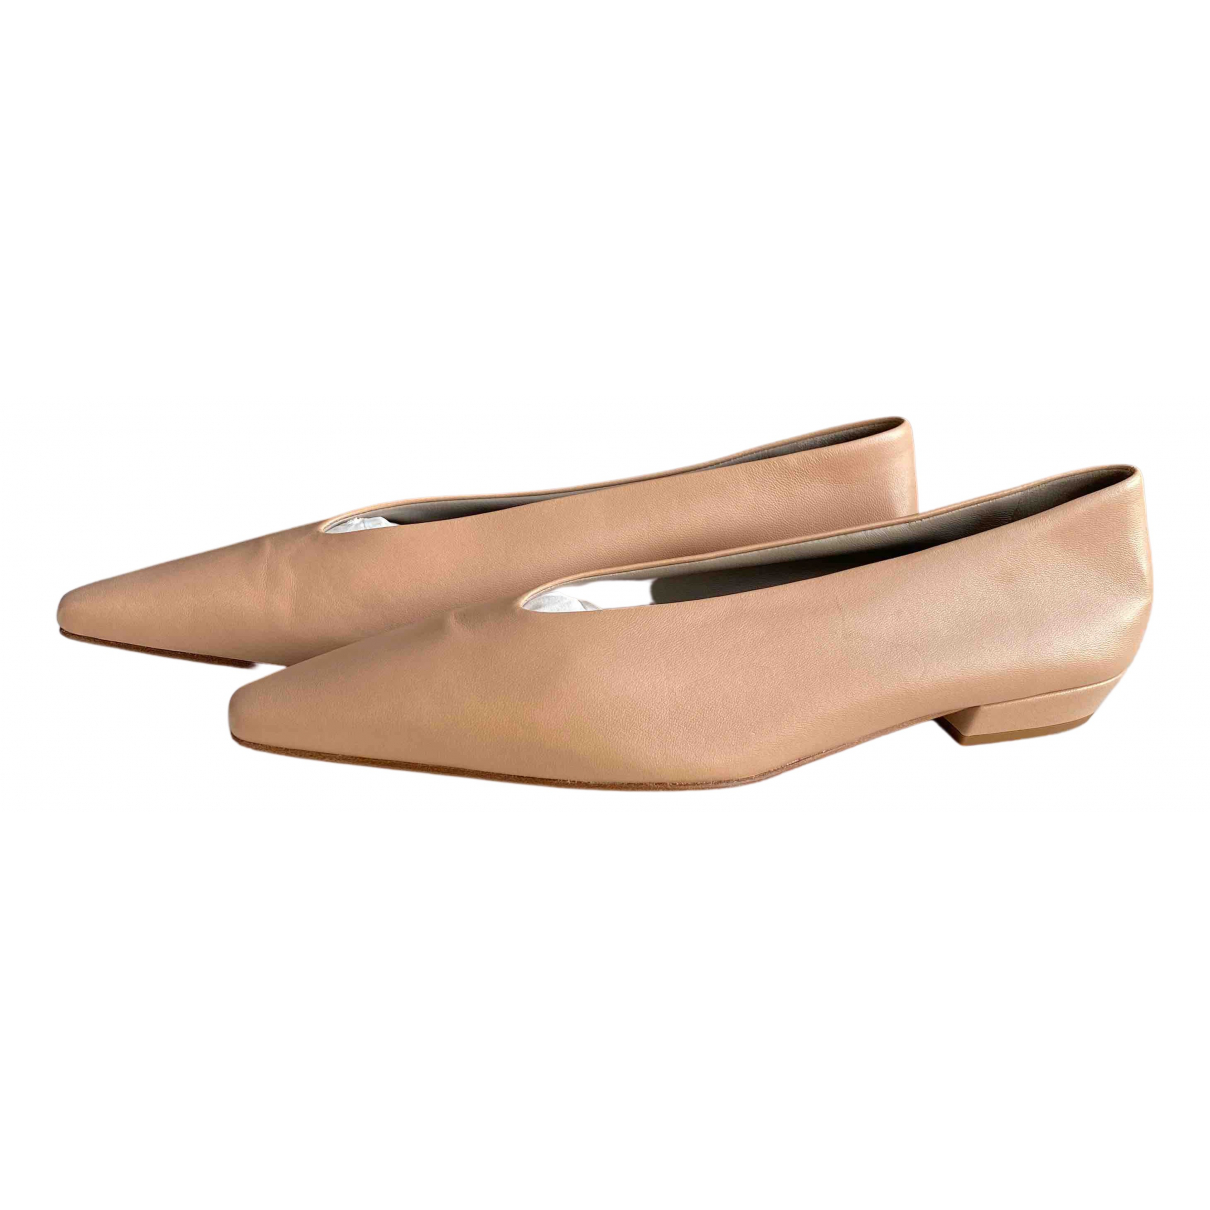 Bottega Veneta N Beige Leather Flats for Women 38.5 EU